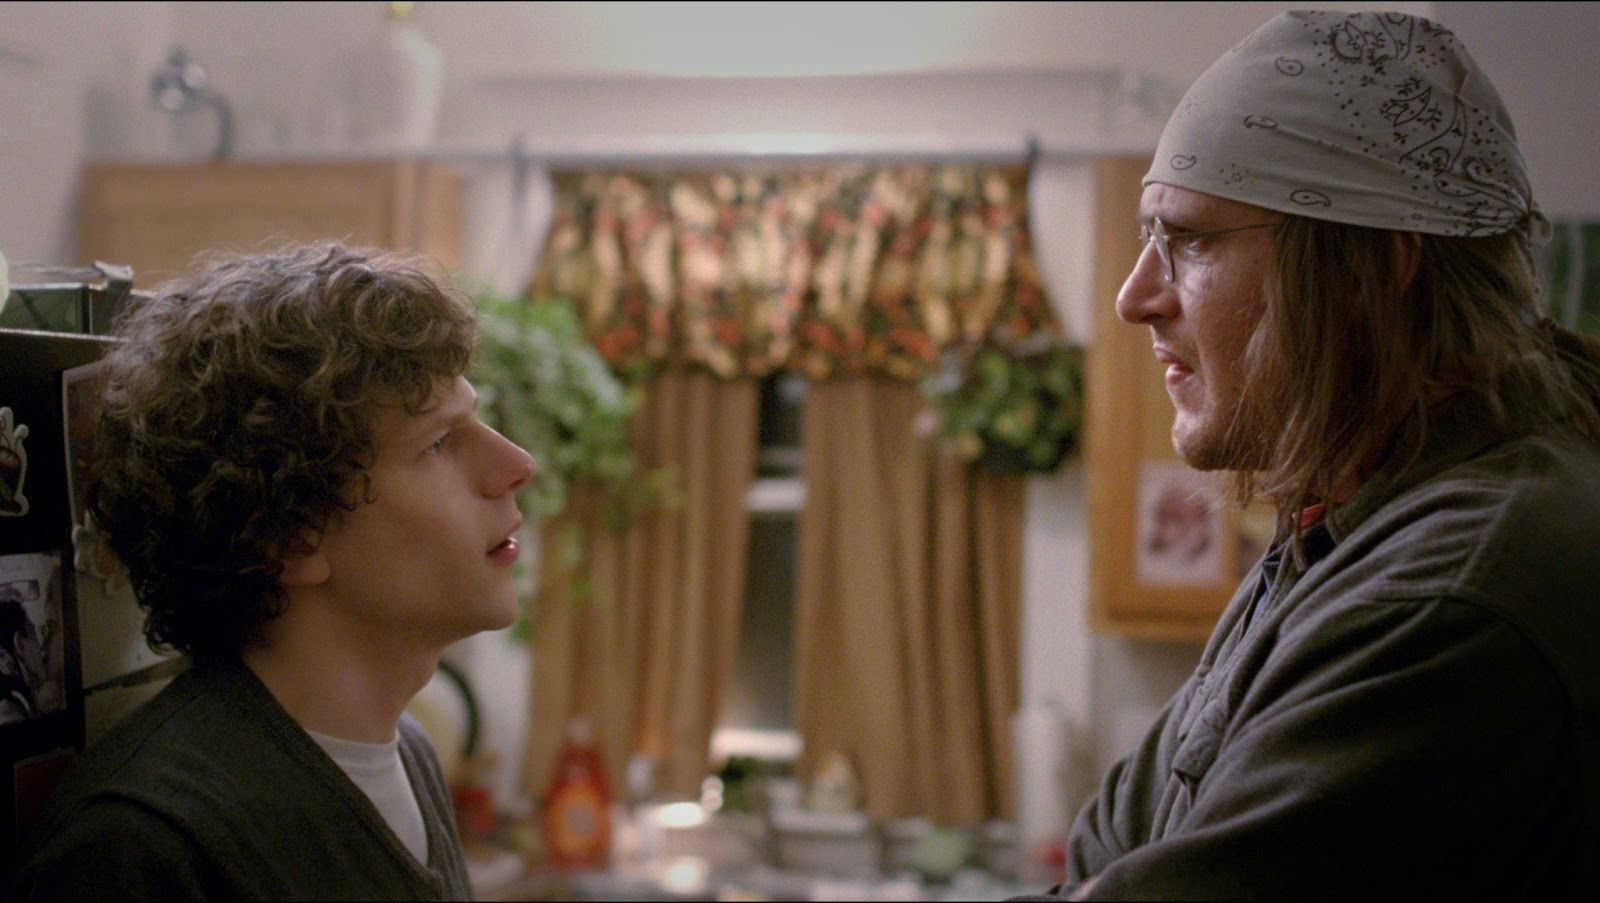 Narrative Centerpiece, his Sundance hit THE END OF THE TOUR starring Jesse Eisenberg and Jason Segel